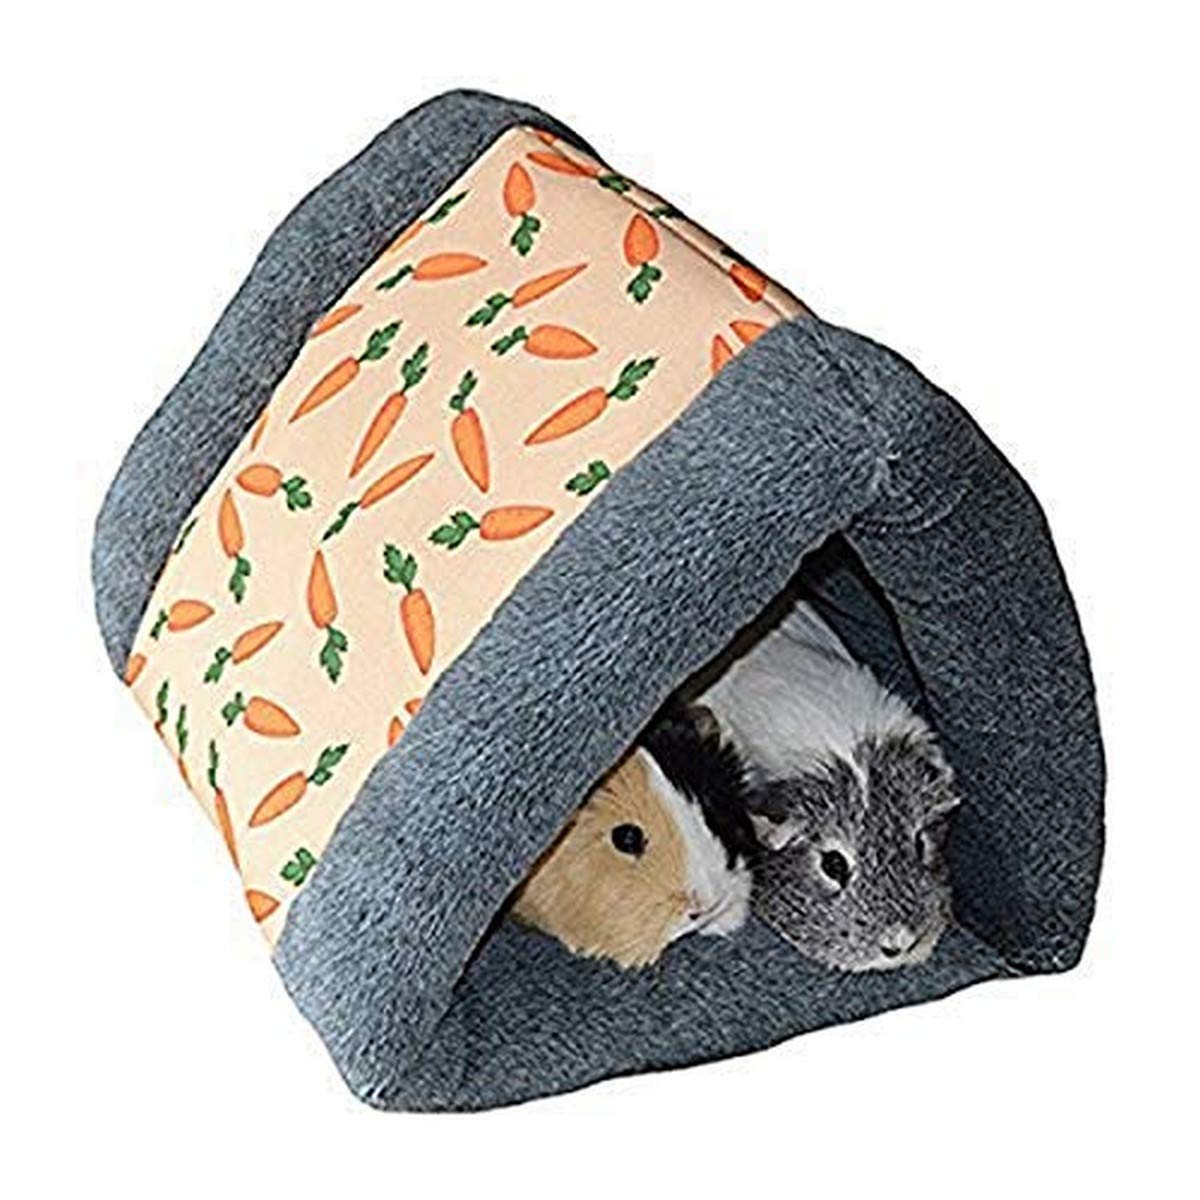 hay bag Guinea pigs w strawberries Fleece cage liner  potty pads  cuddle cup  snuggle sack  foam tunnel C/&C Midwest